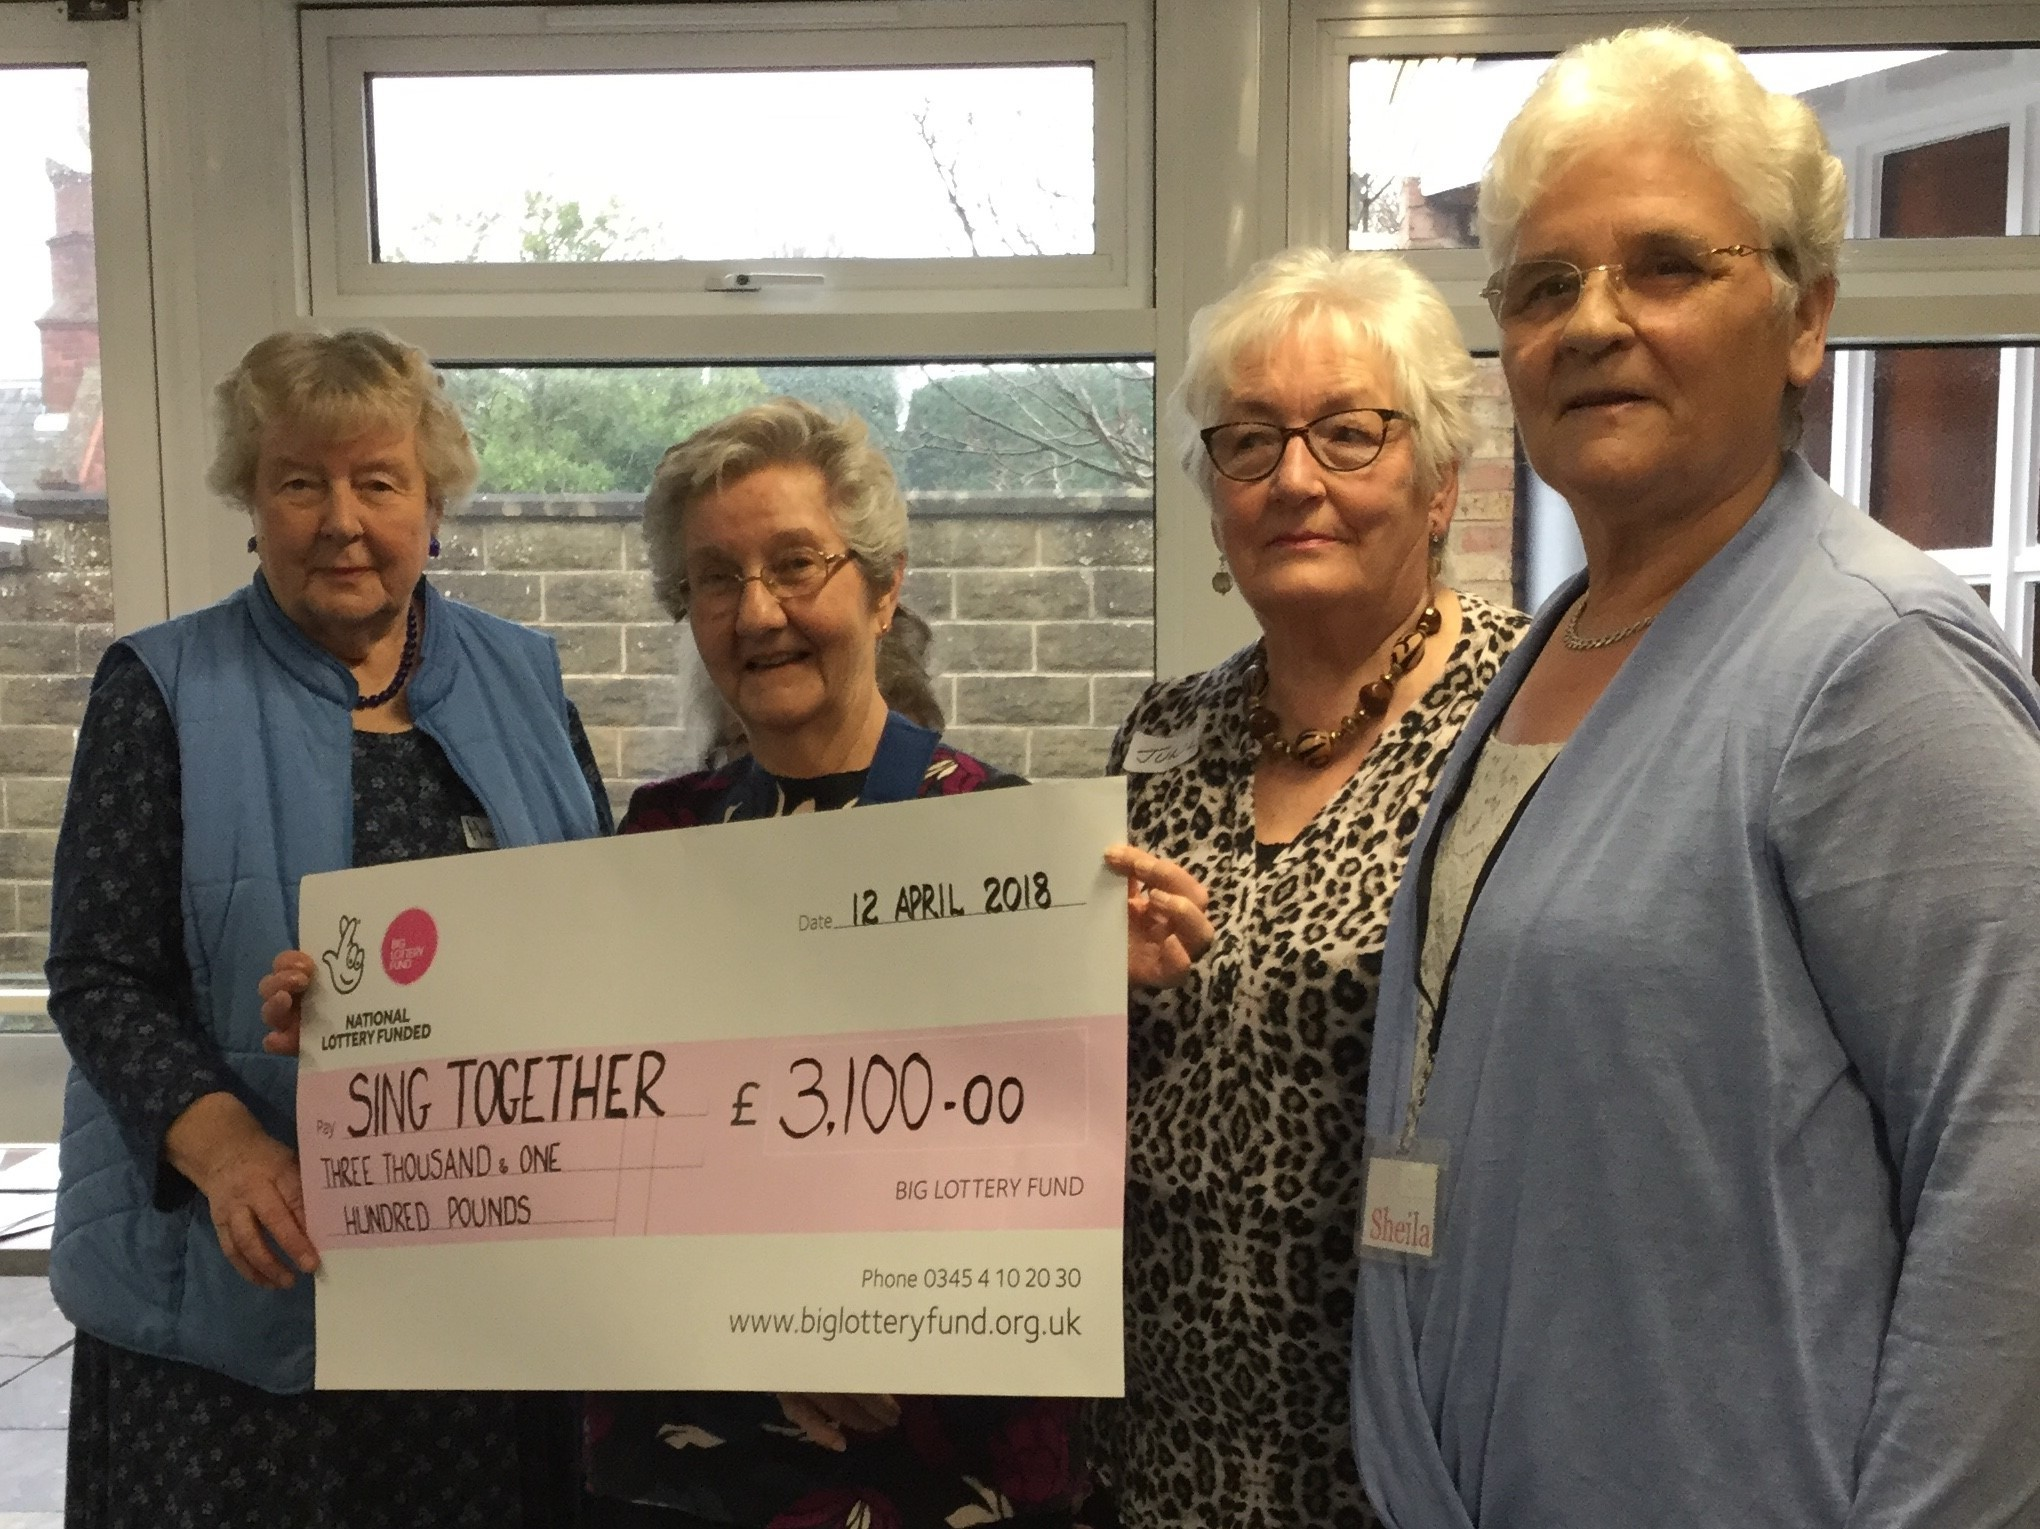 LOTTERY: Members of Sing Together in Northallerton